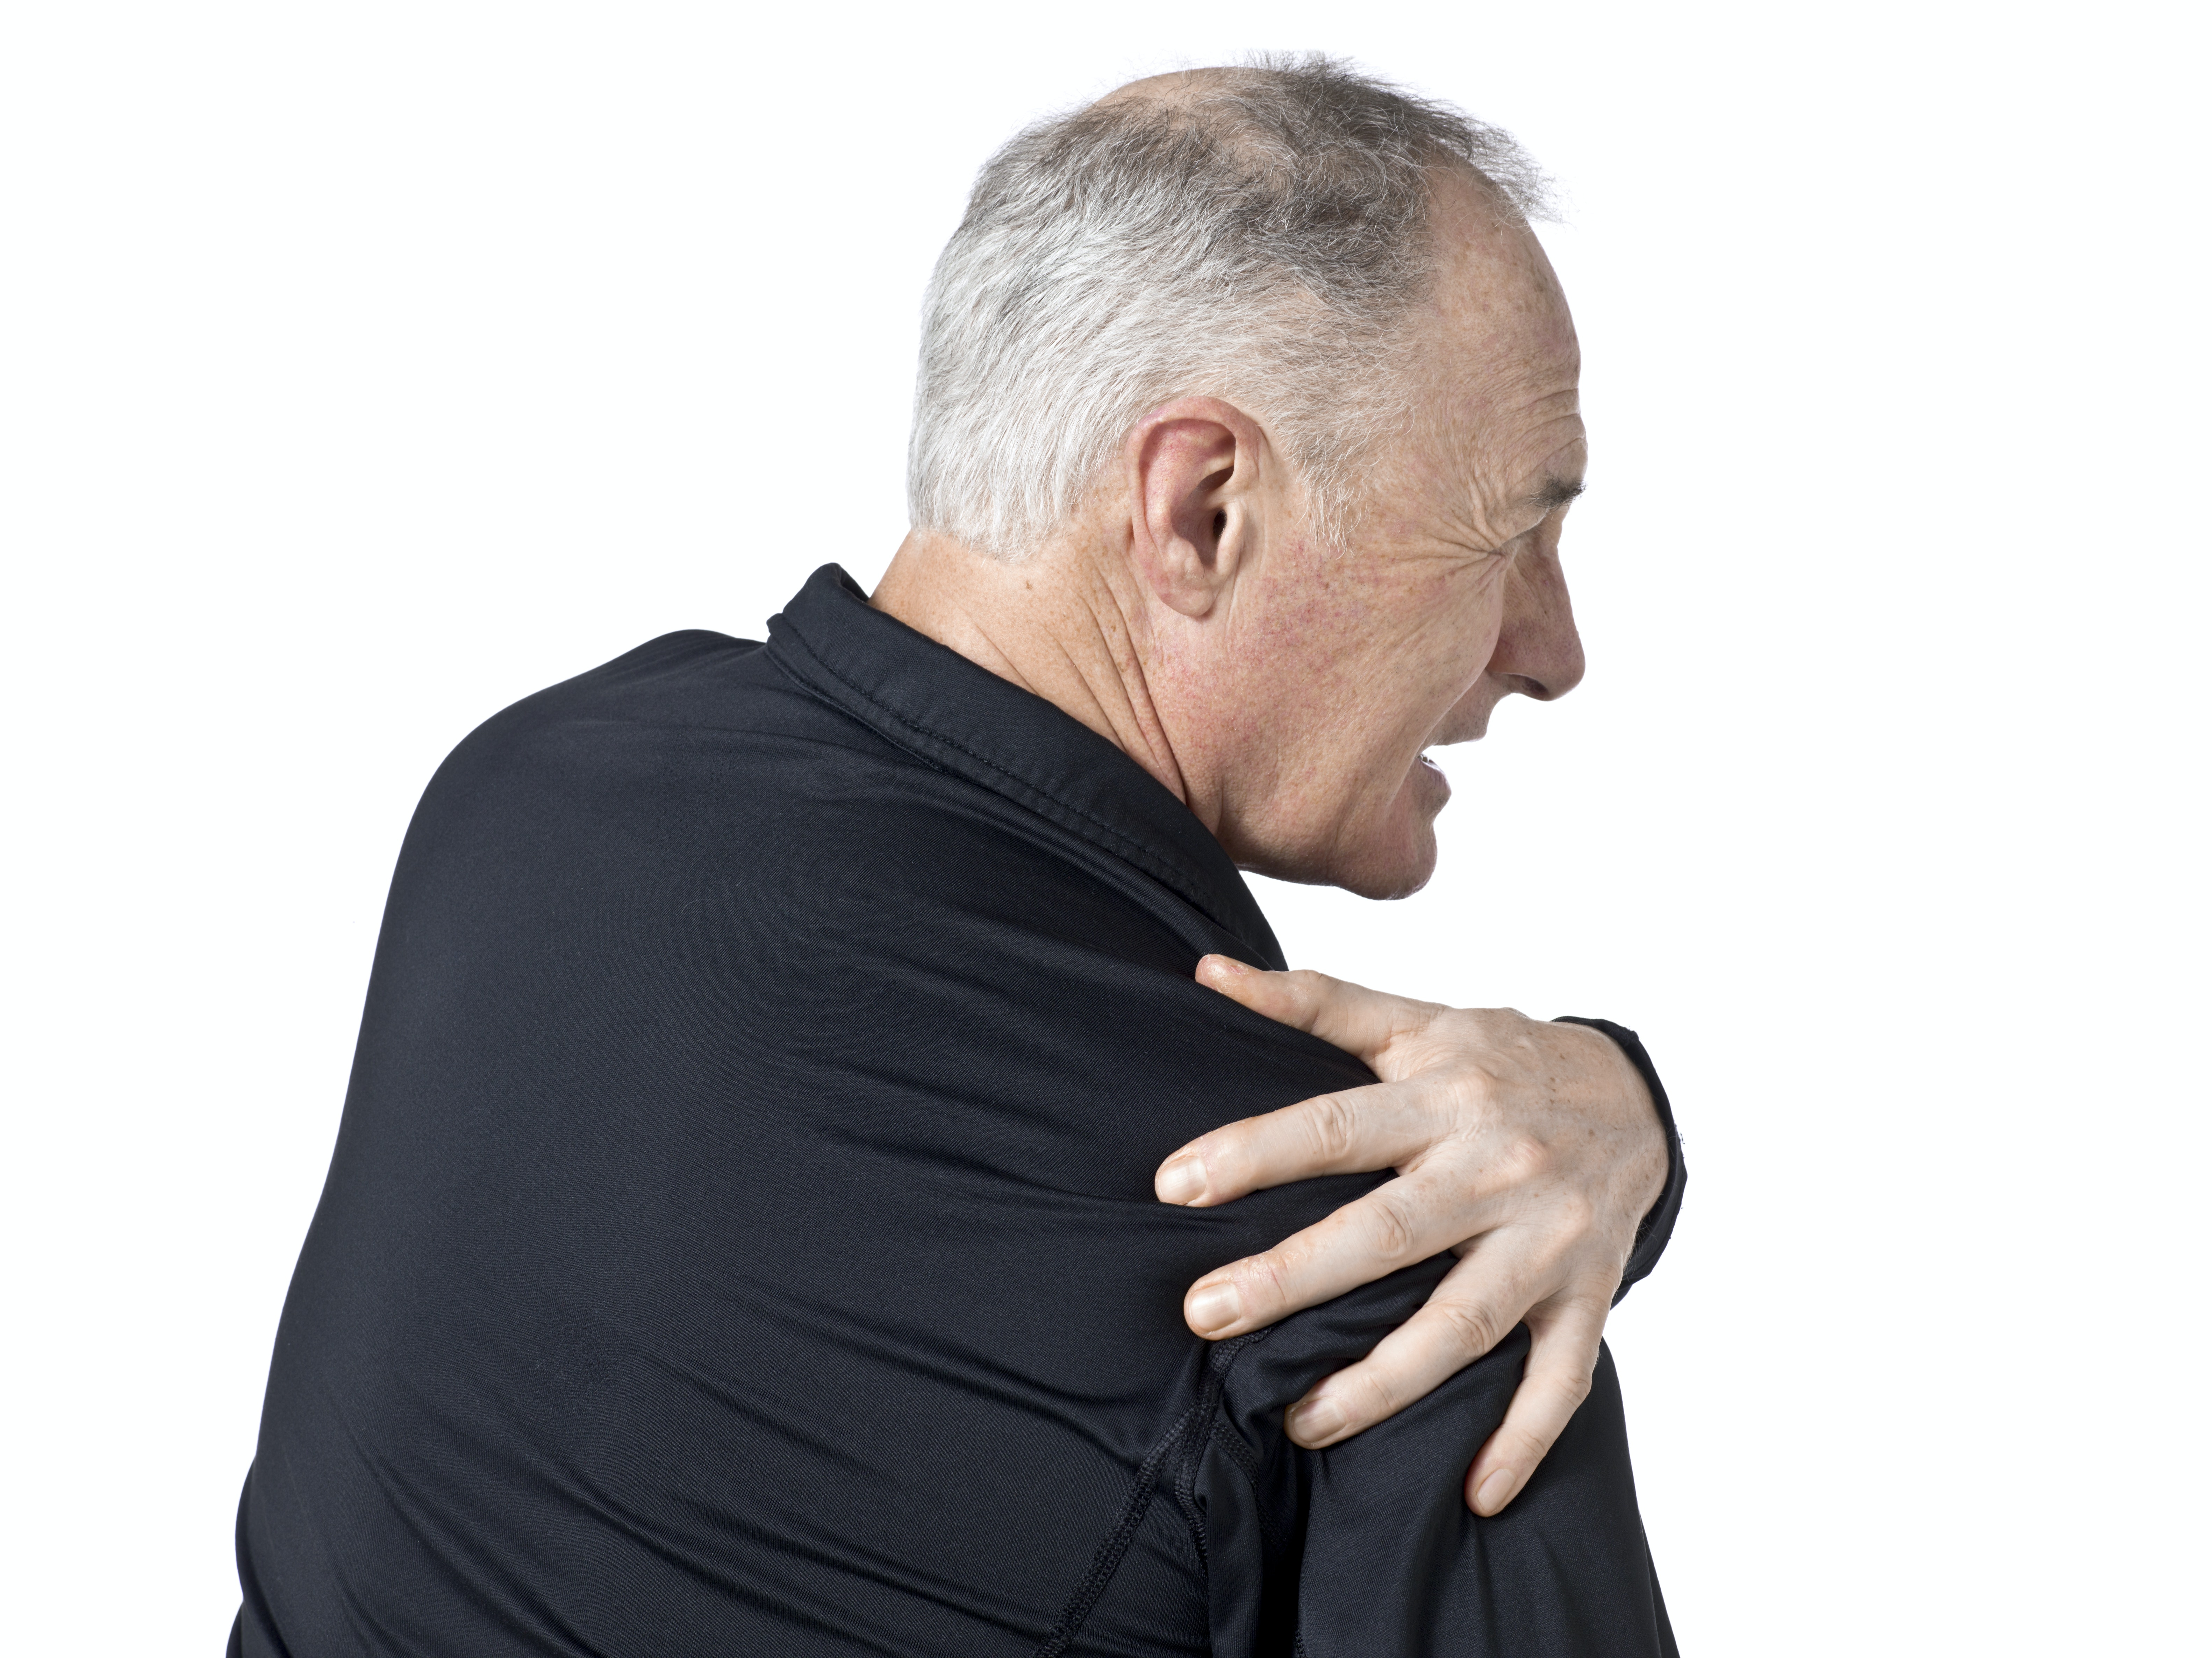 An image depicting a person suffering from Shoulder Arthritis symptoms